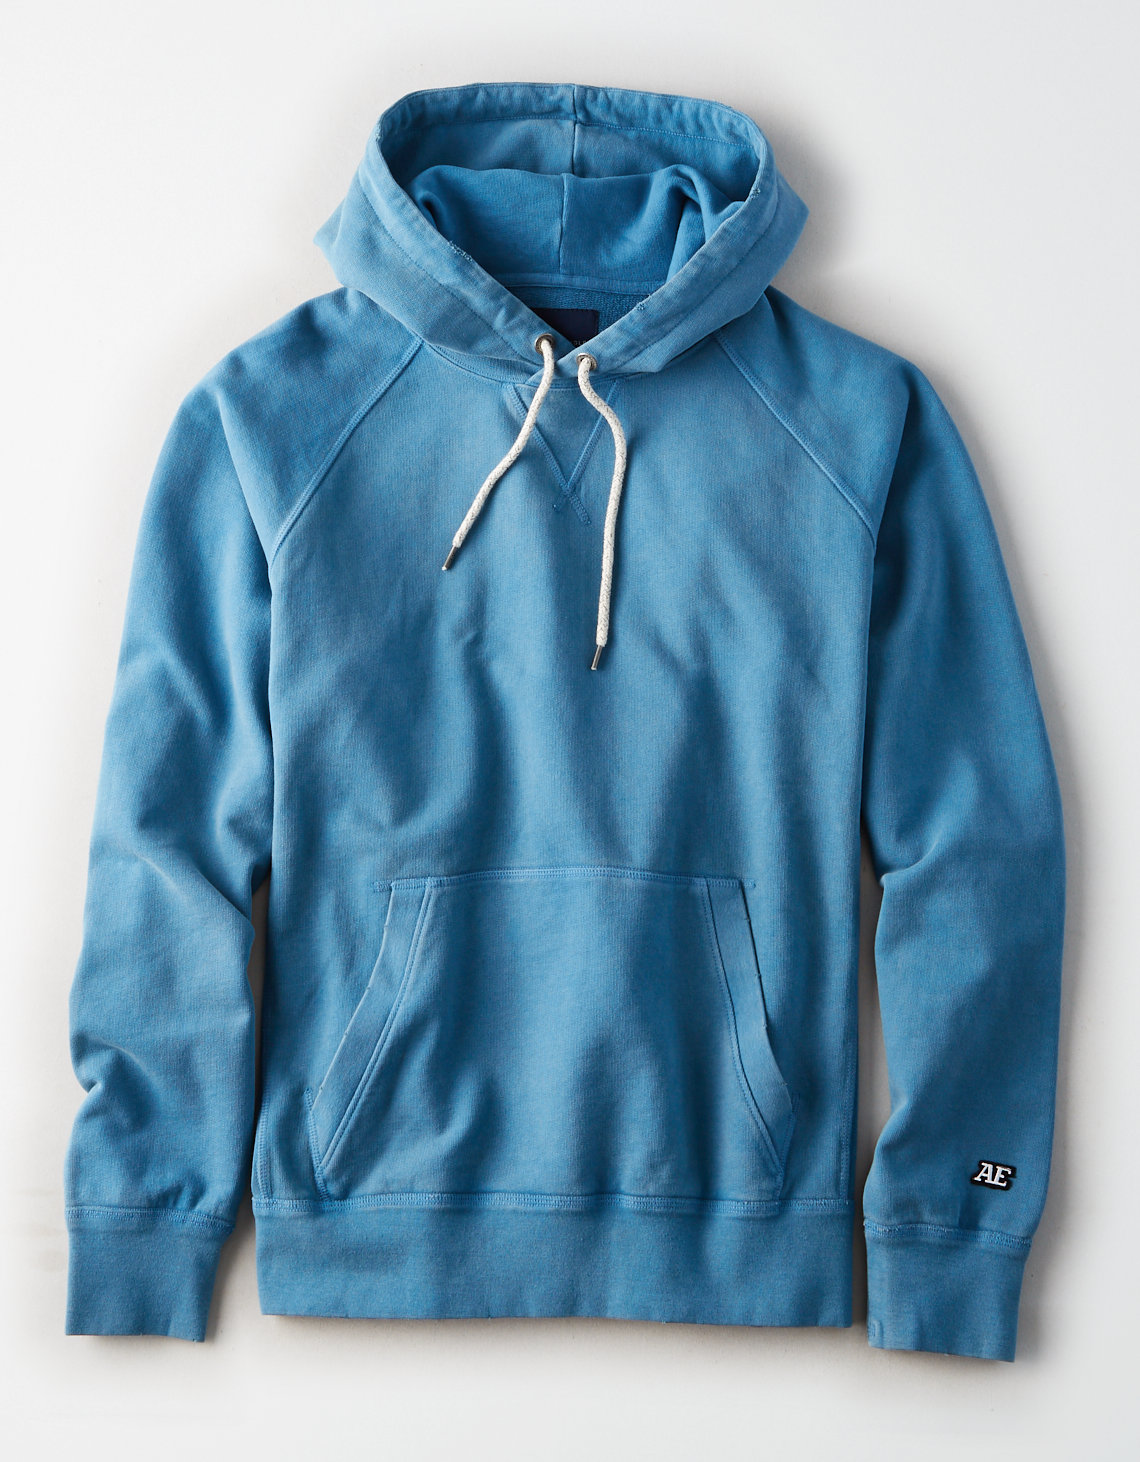 f6d5aea505b AE Pullover Hoodie. Placeholder image. Product Image